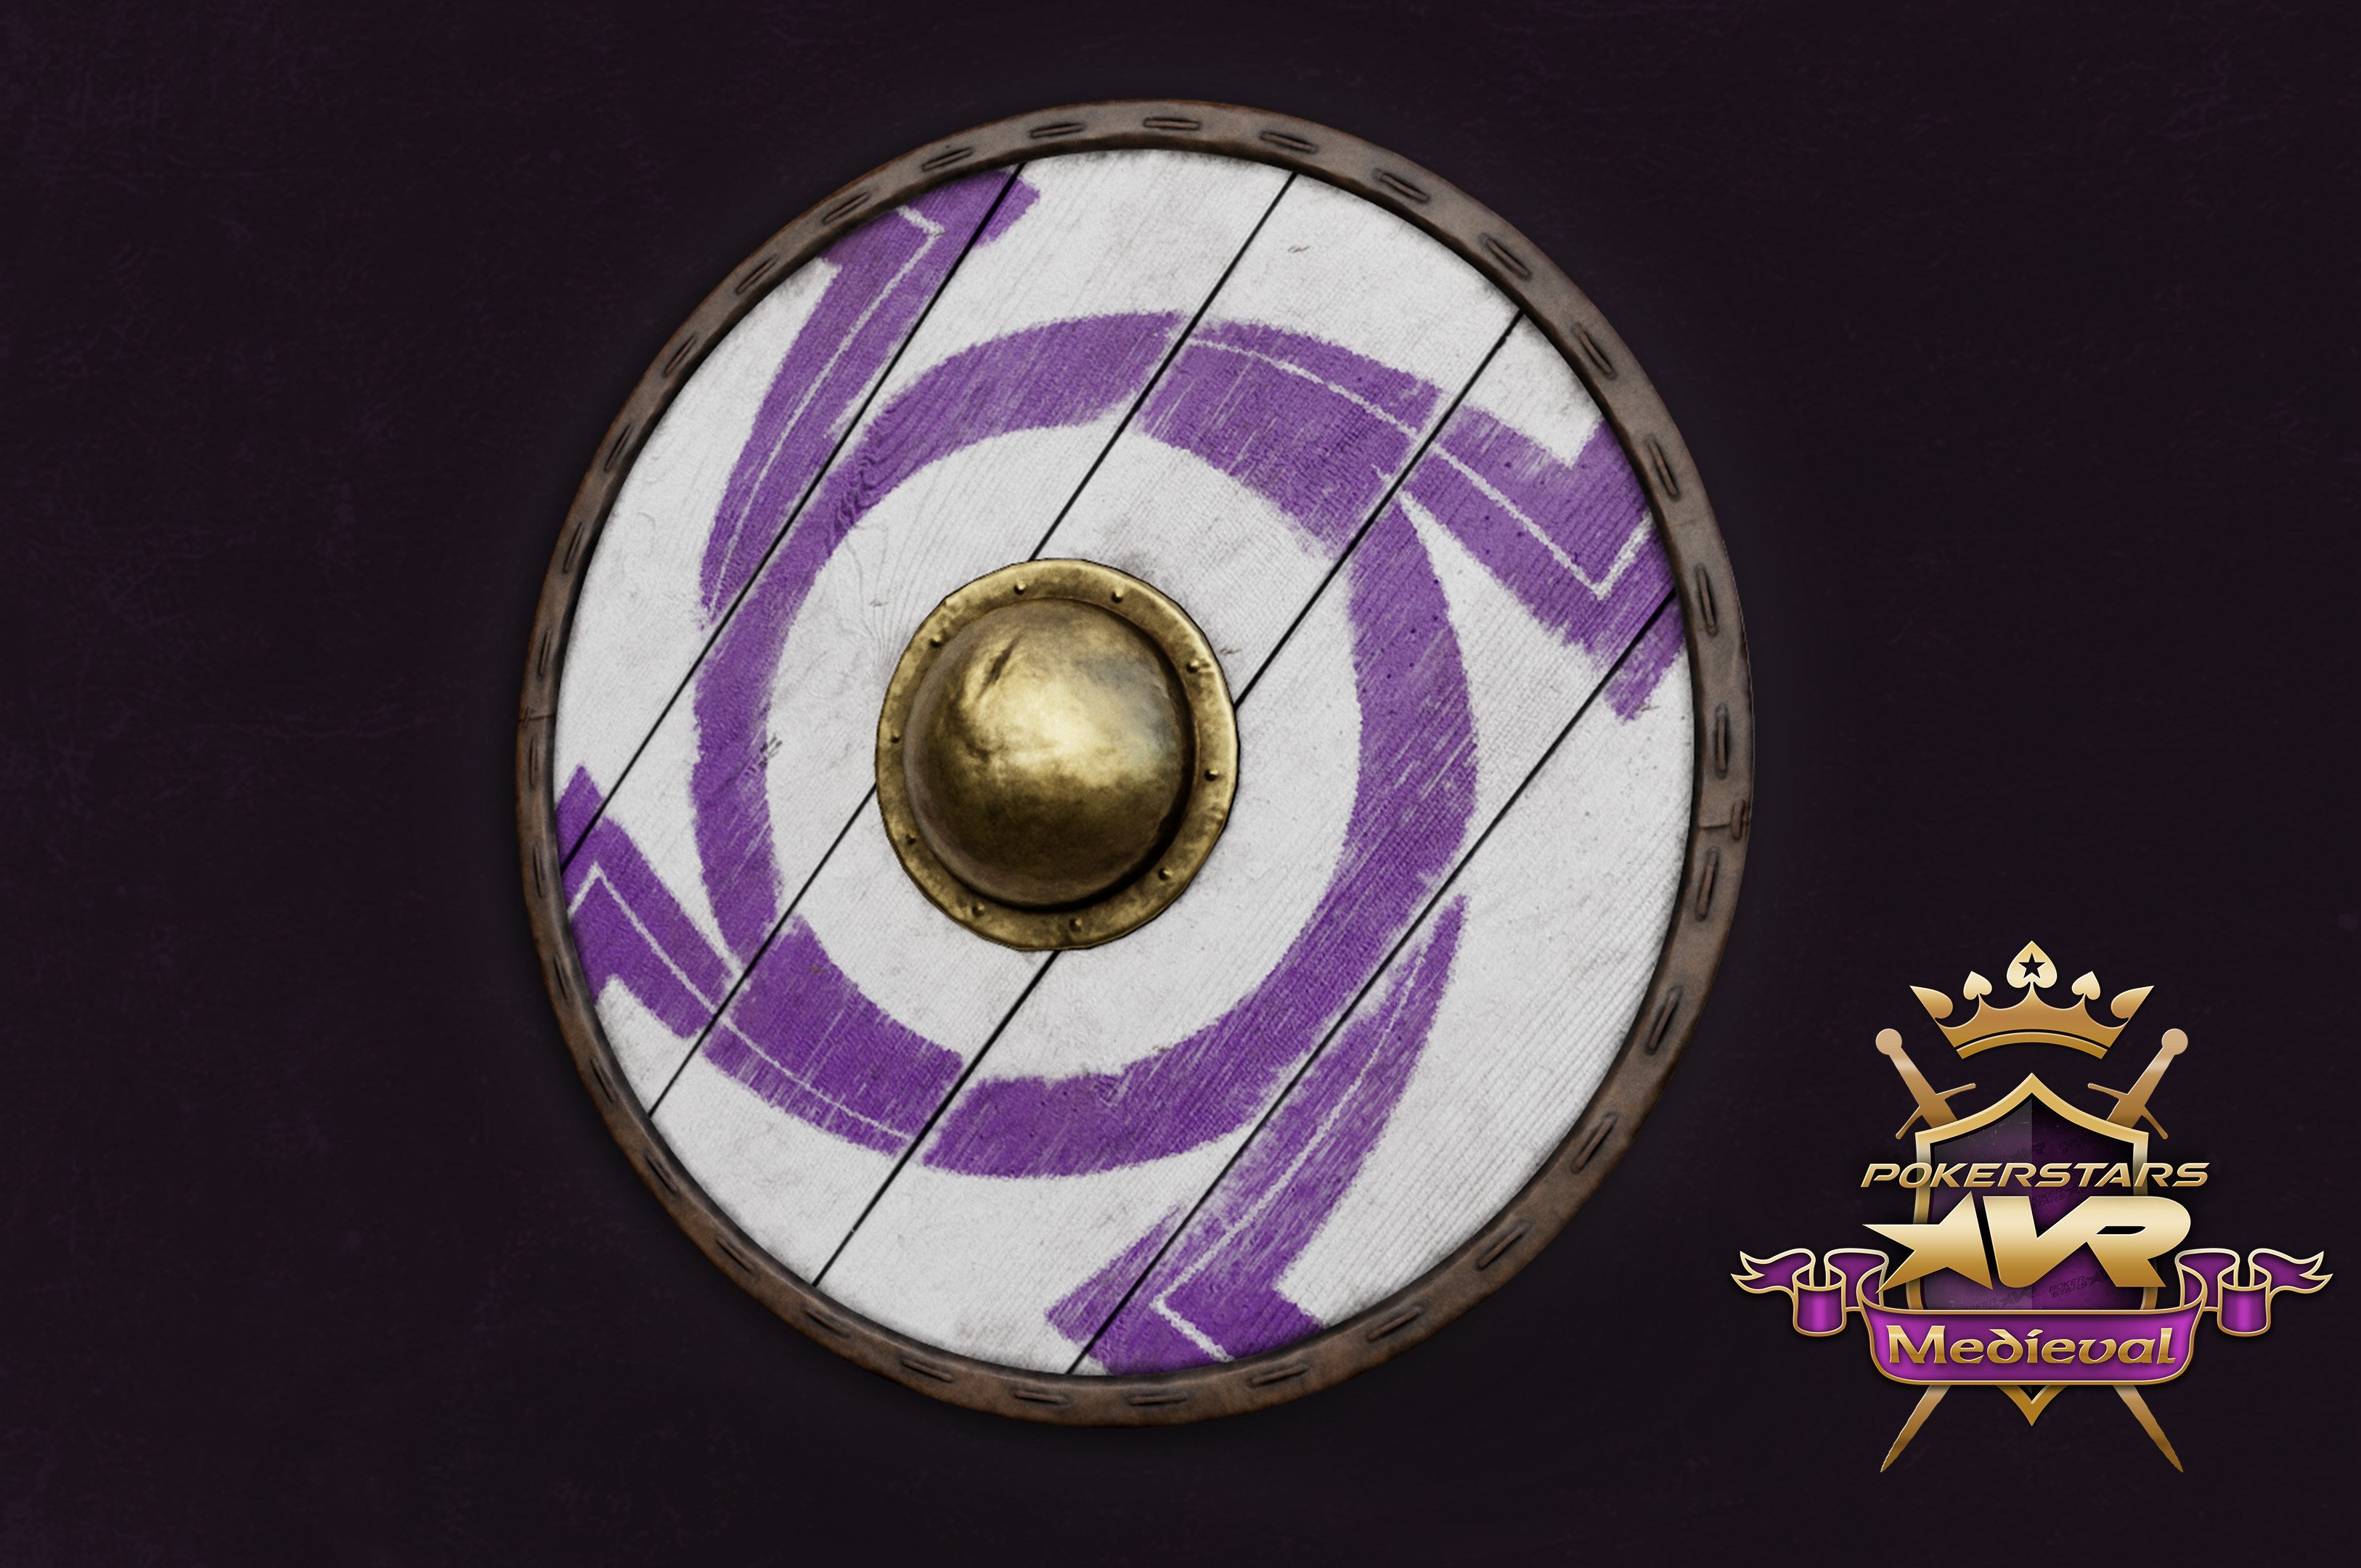 Round Shield with a custom reskin for Medieval Pack purchasers.